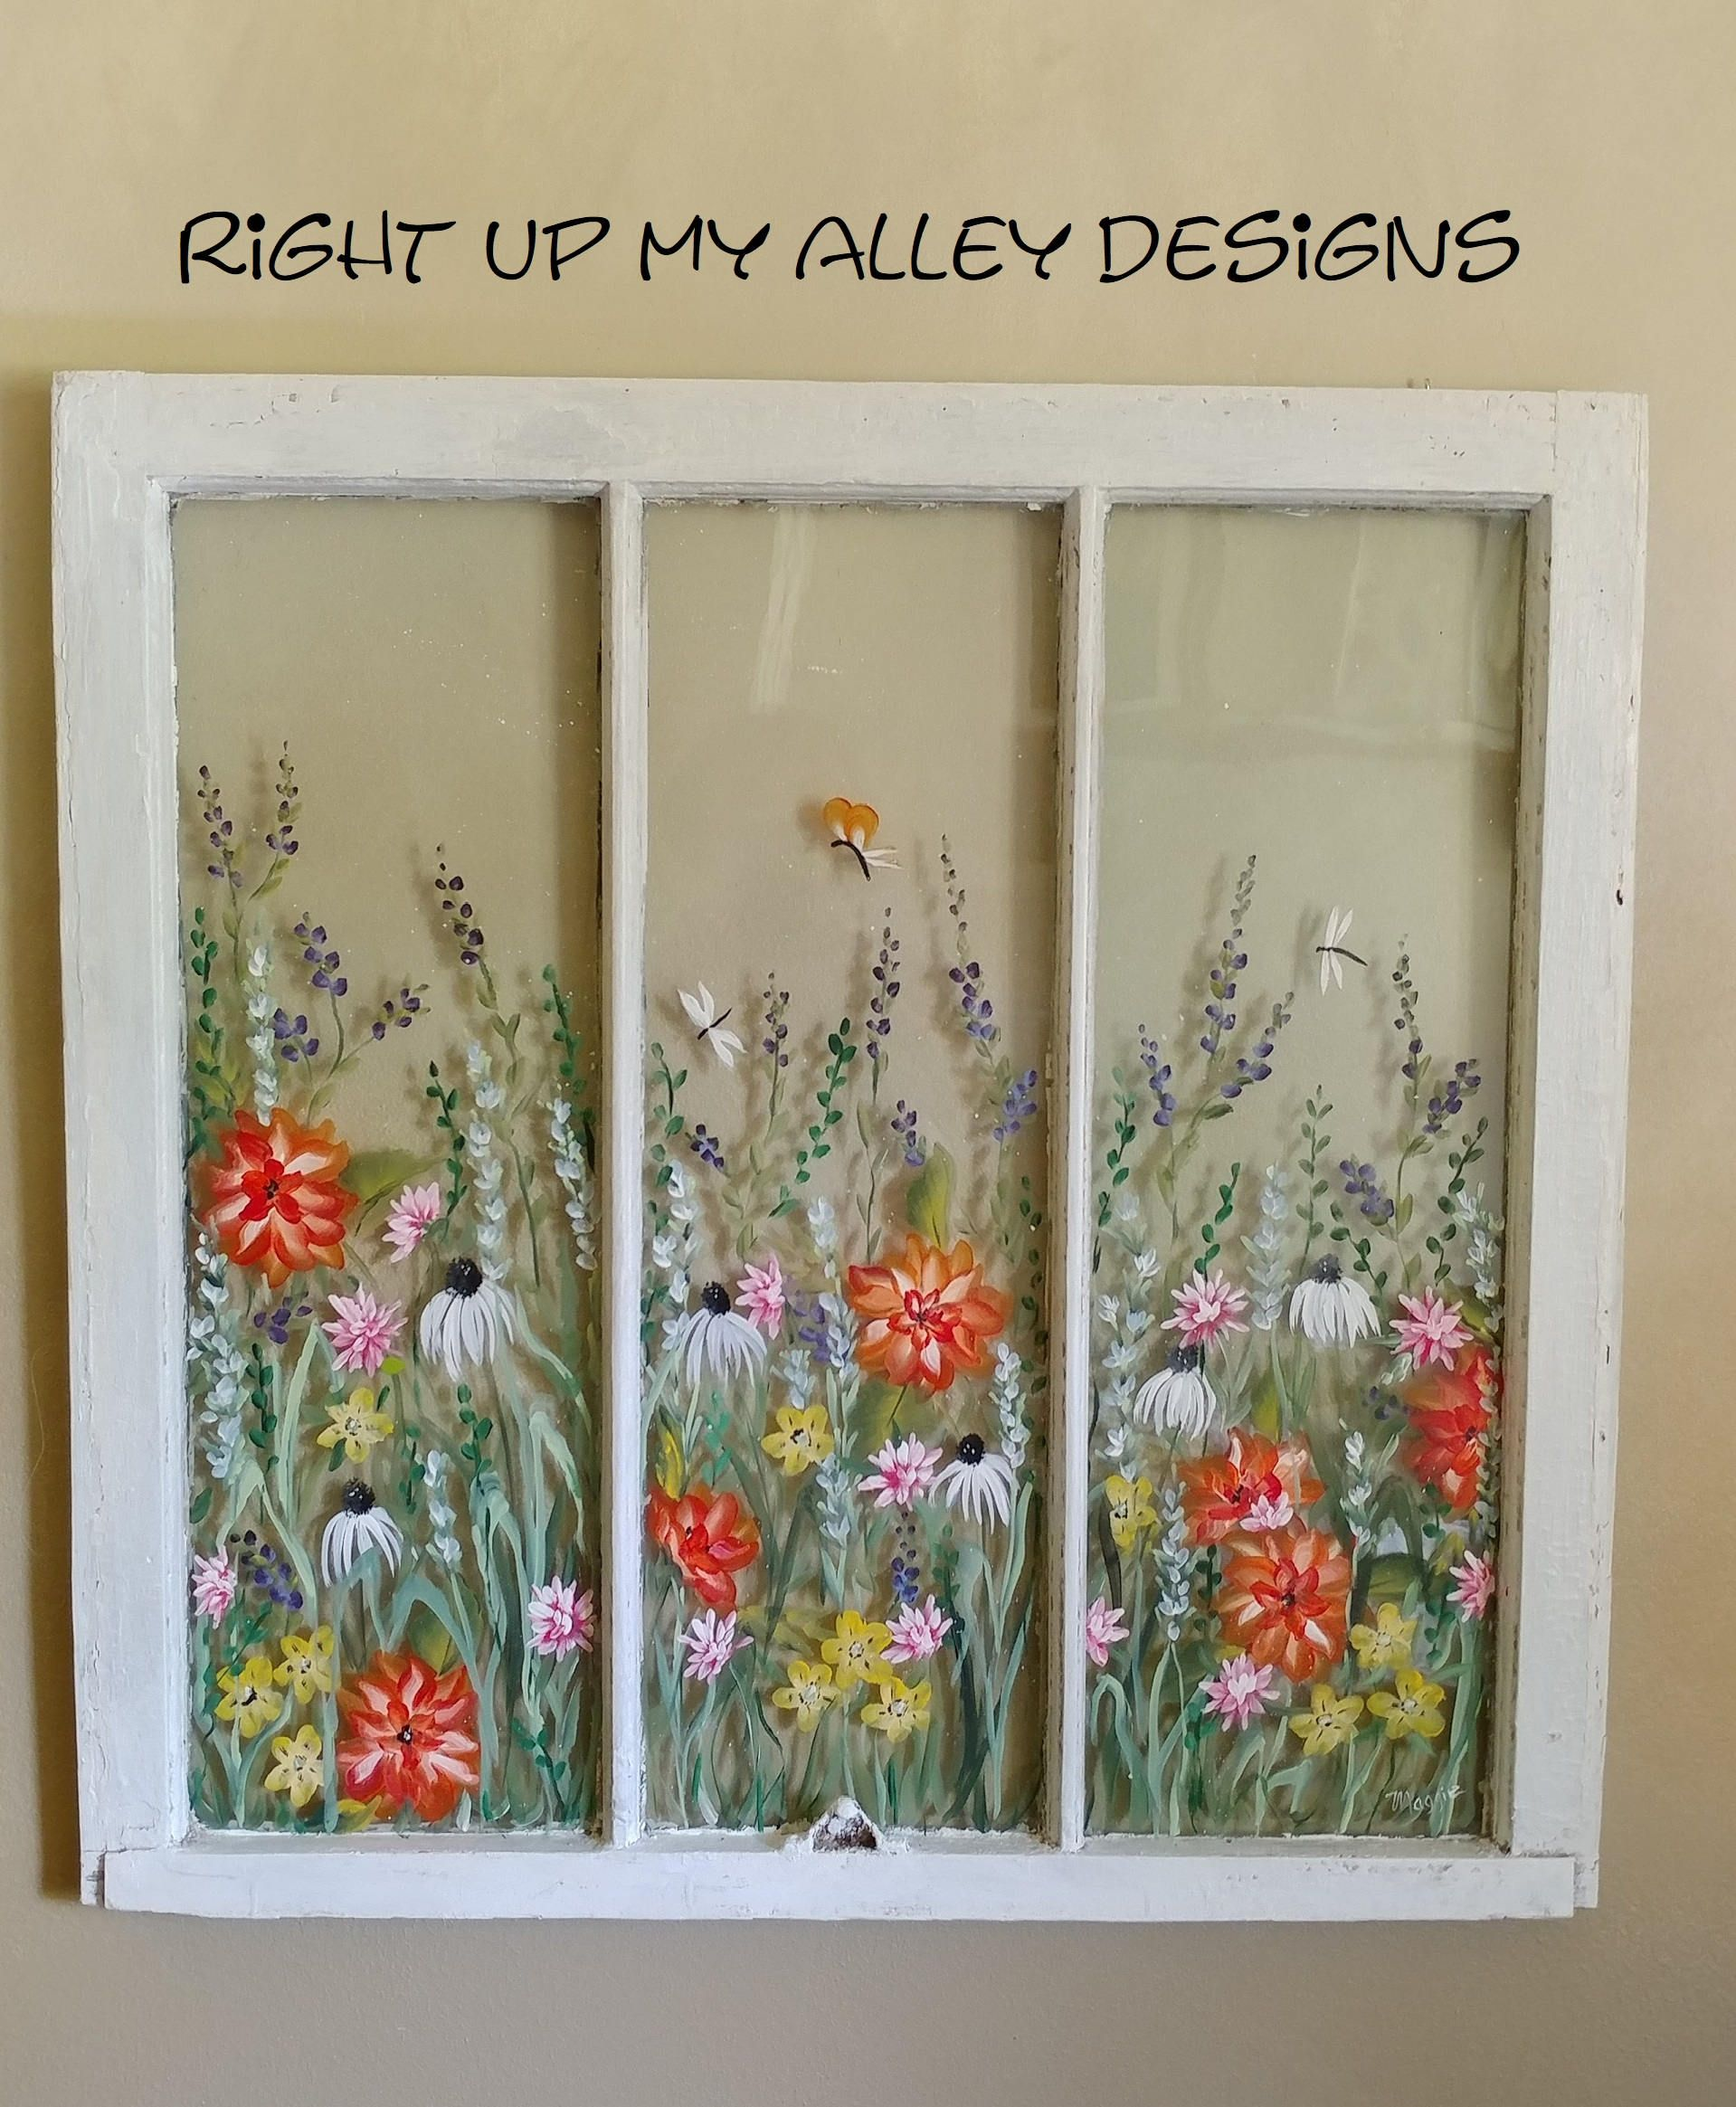 Old Painted Window Sold But You Can Custom Order Your Own Window Ideas Wall Art Vintage Painted Window Unique Wall Art 3pane Window Window Painting Old Windows Painted Window Pane Art